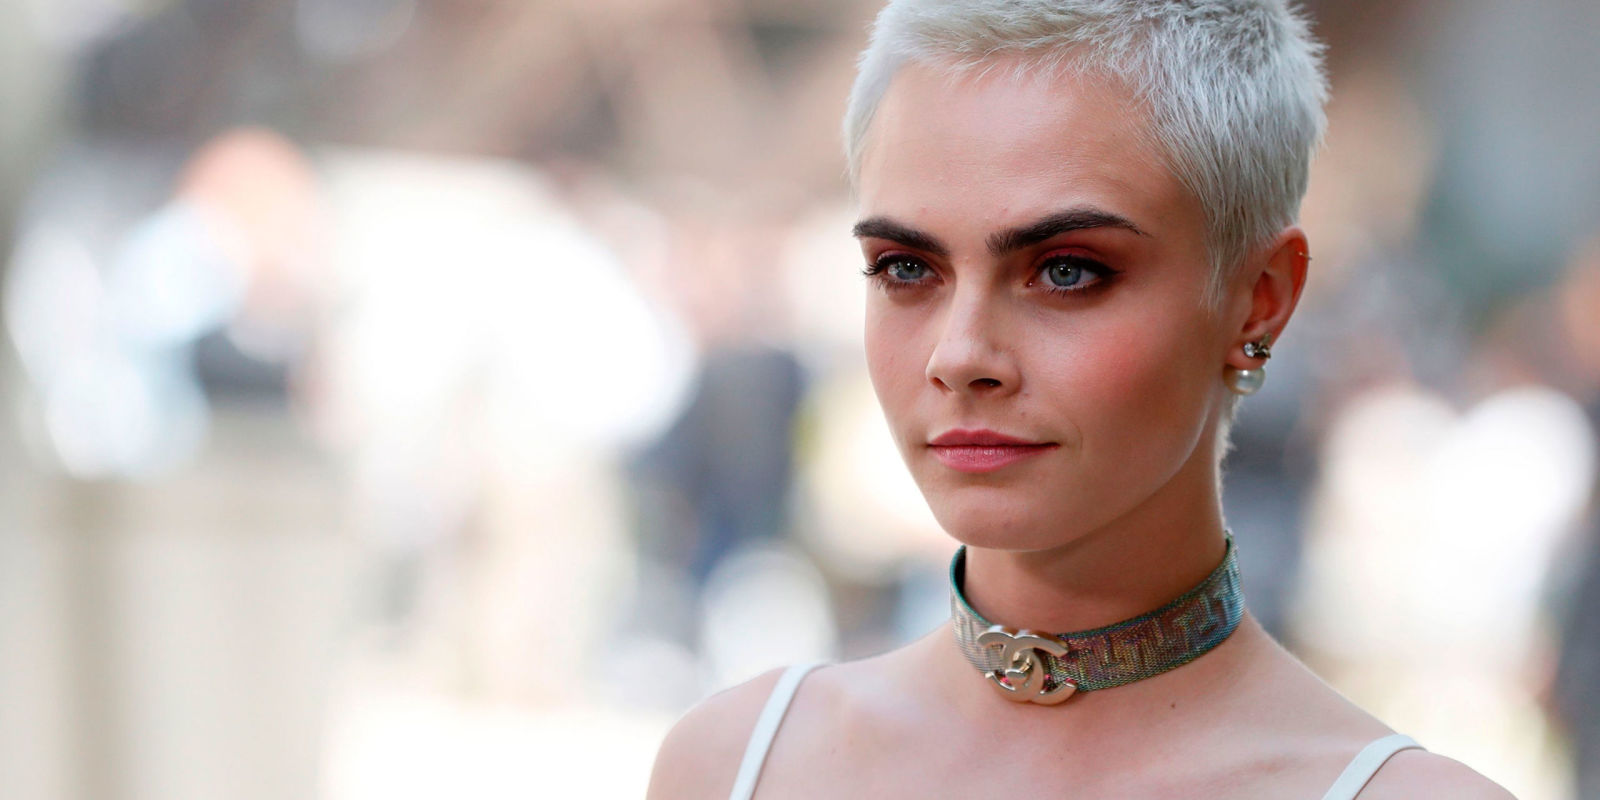 Cara Delevingne Accuses Harvey Weinstein of Sexual Harassment